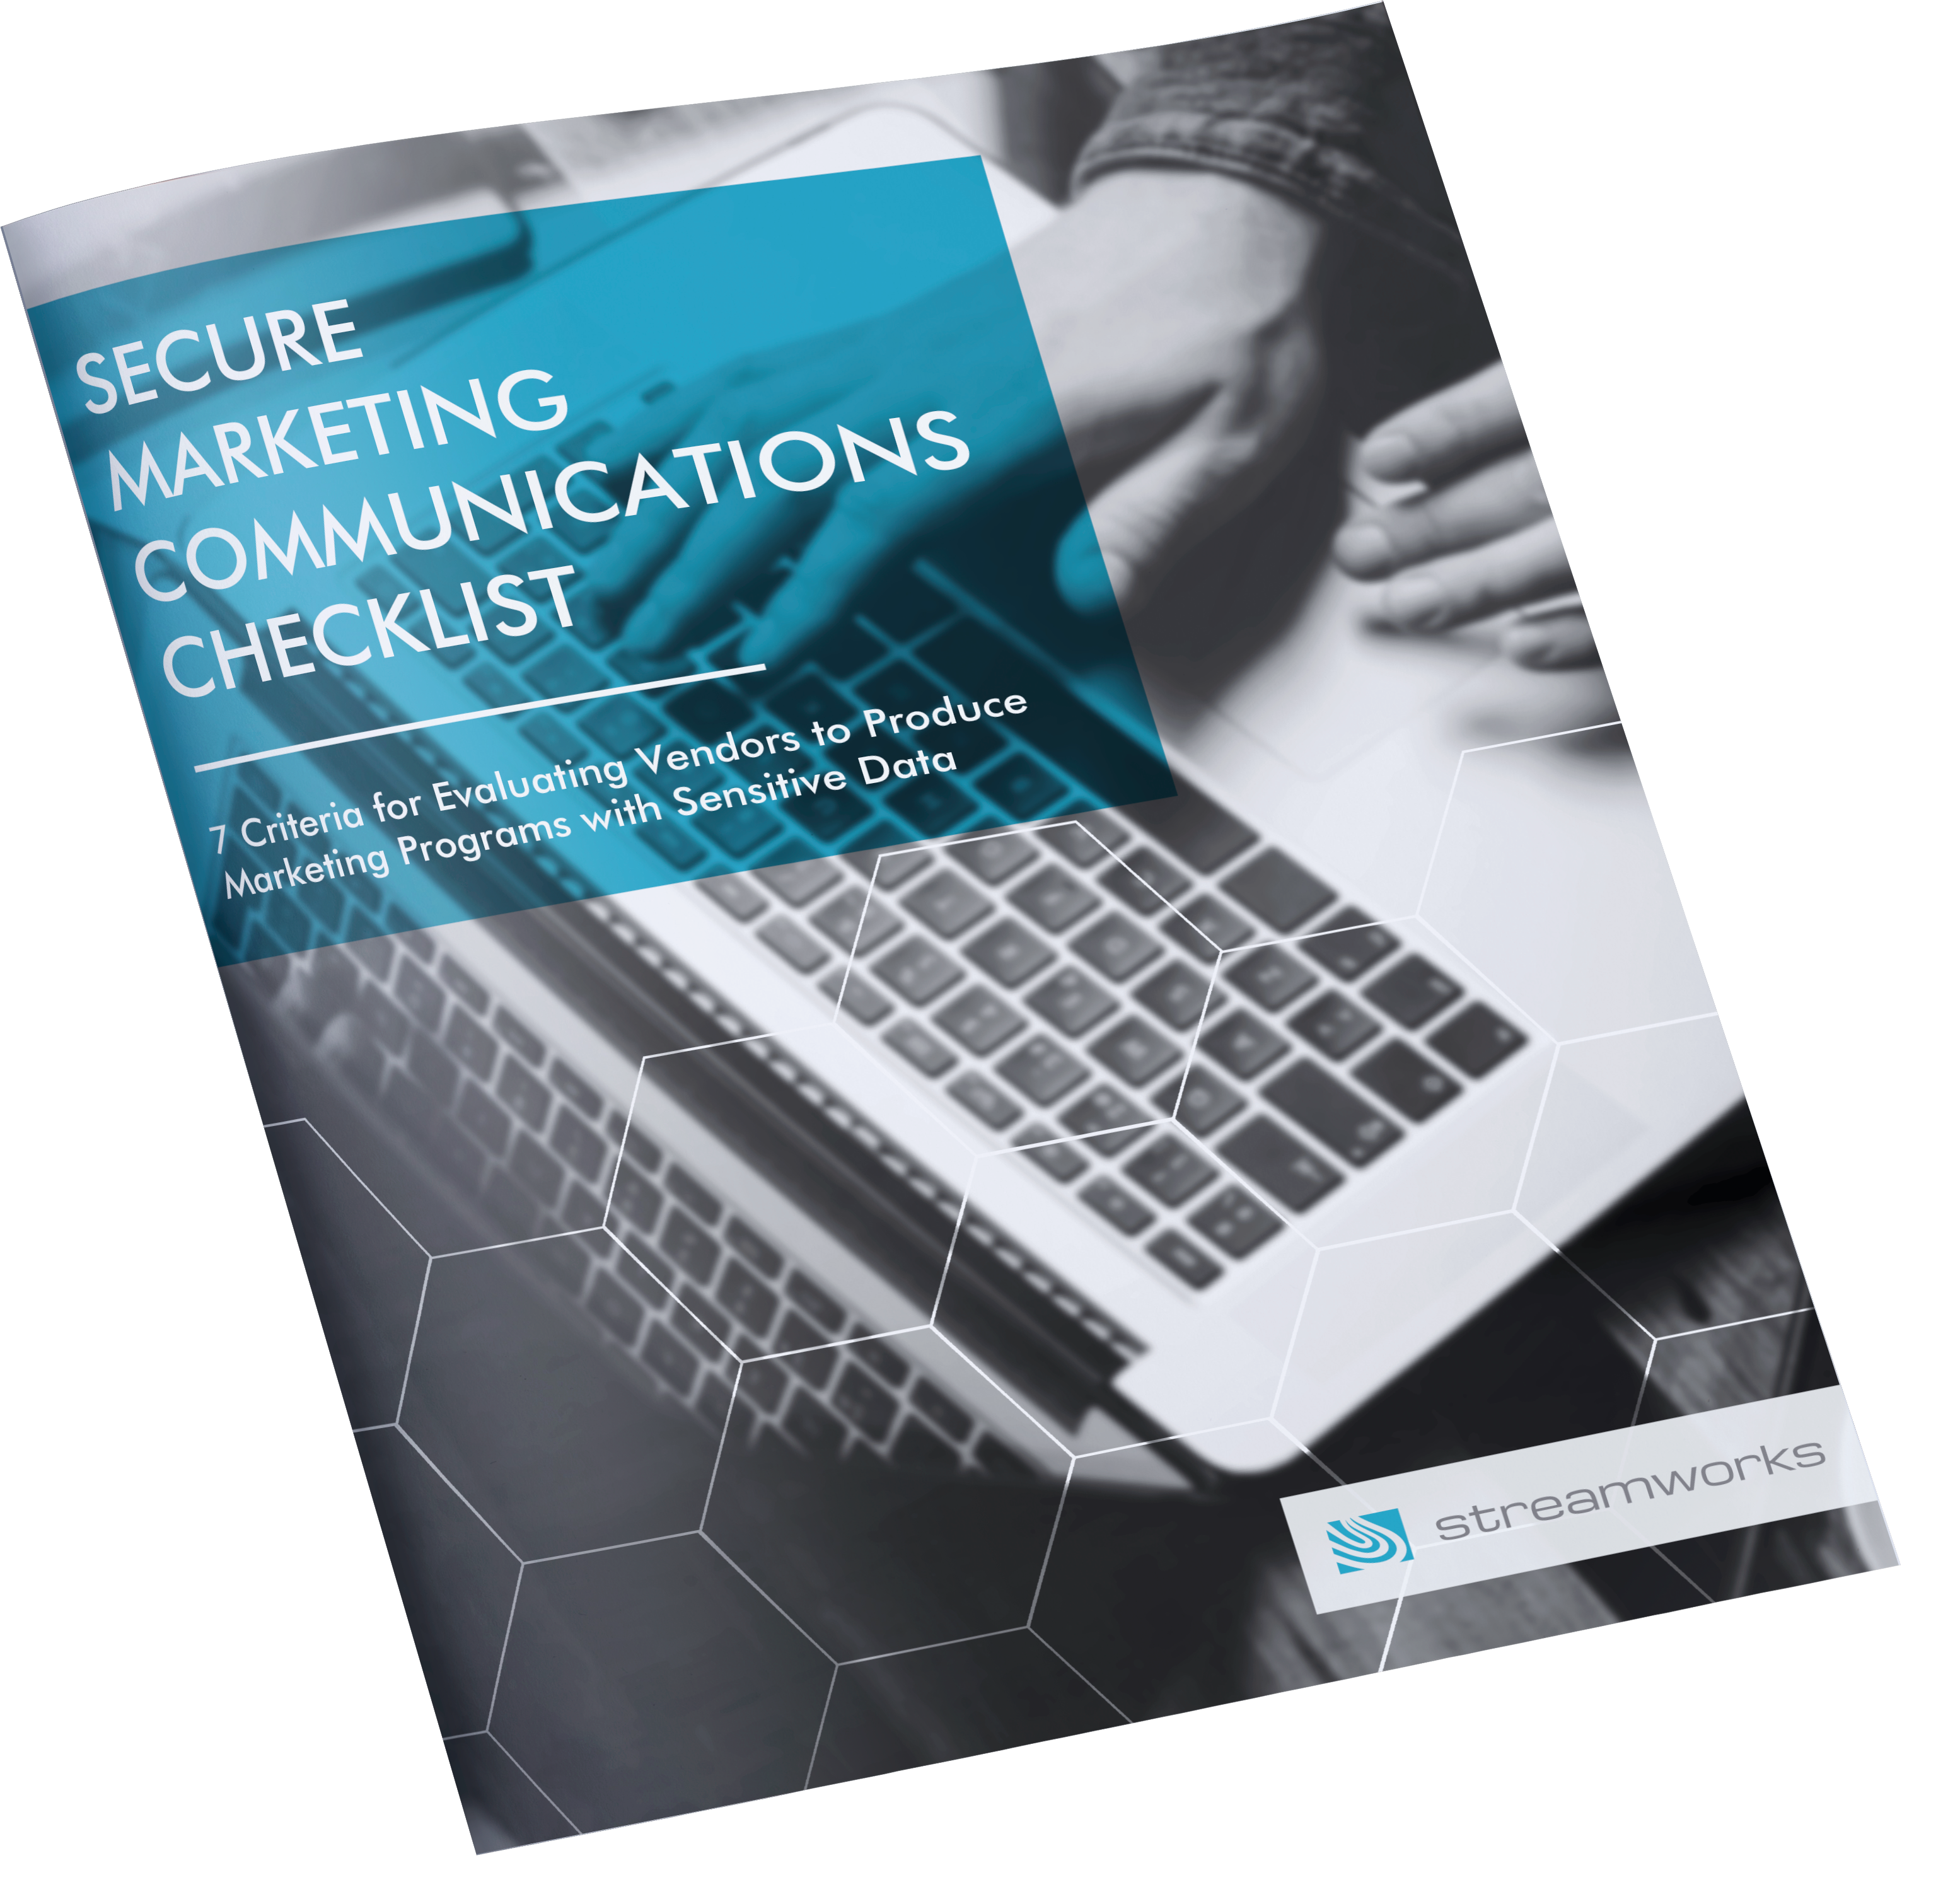 Secure Marketing Communications Checklist Download